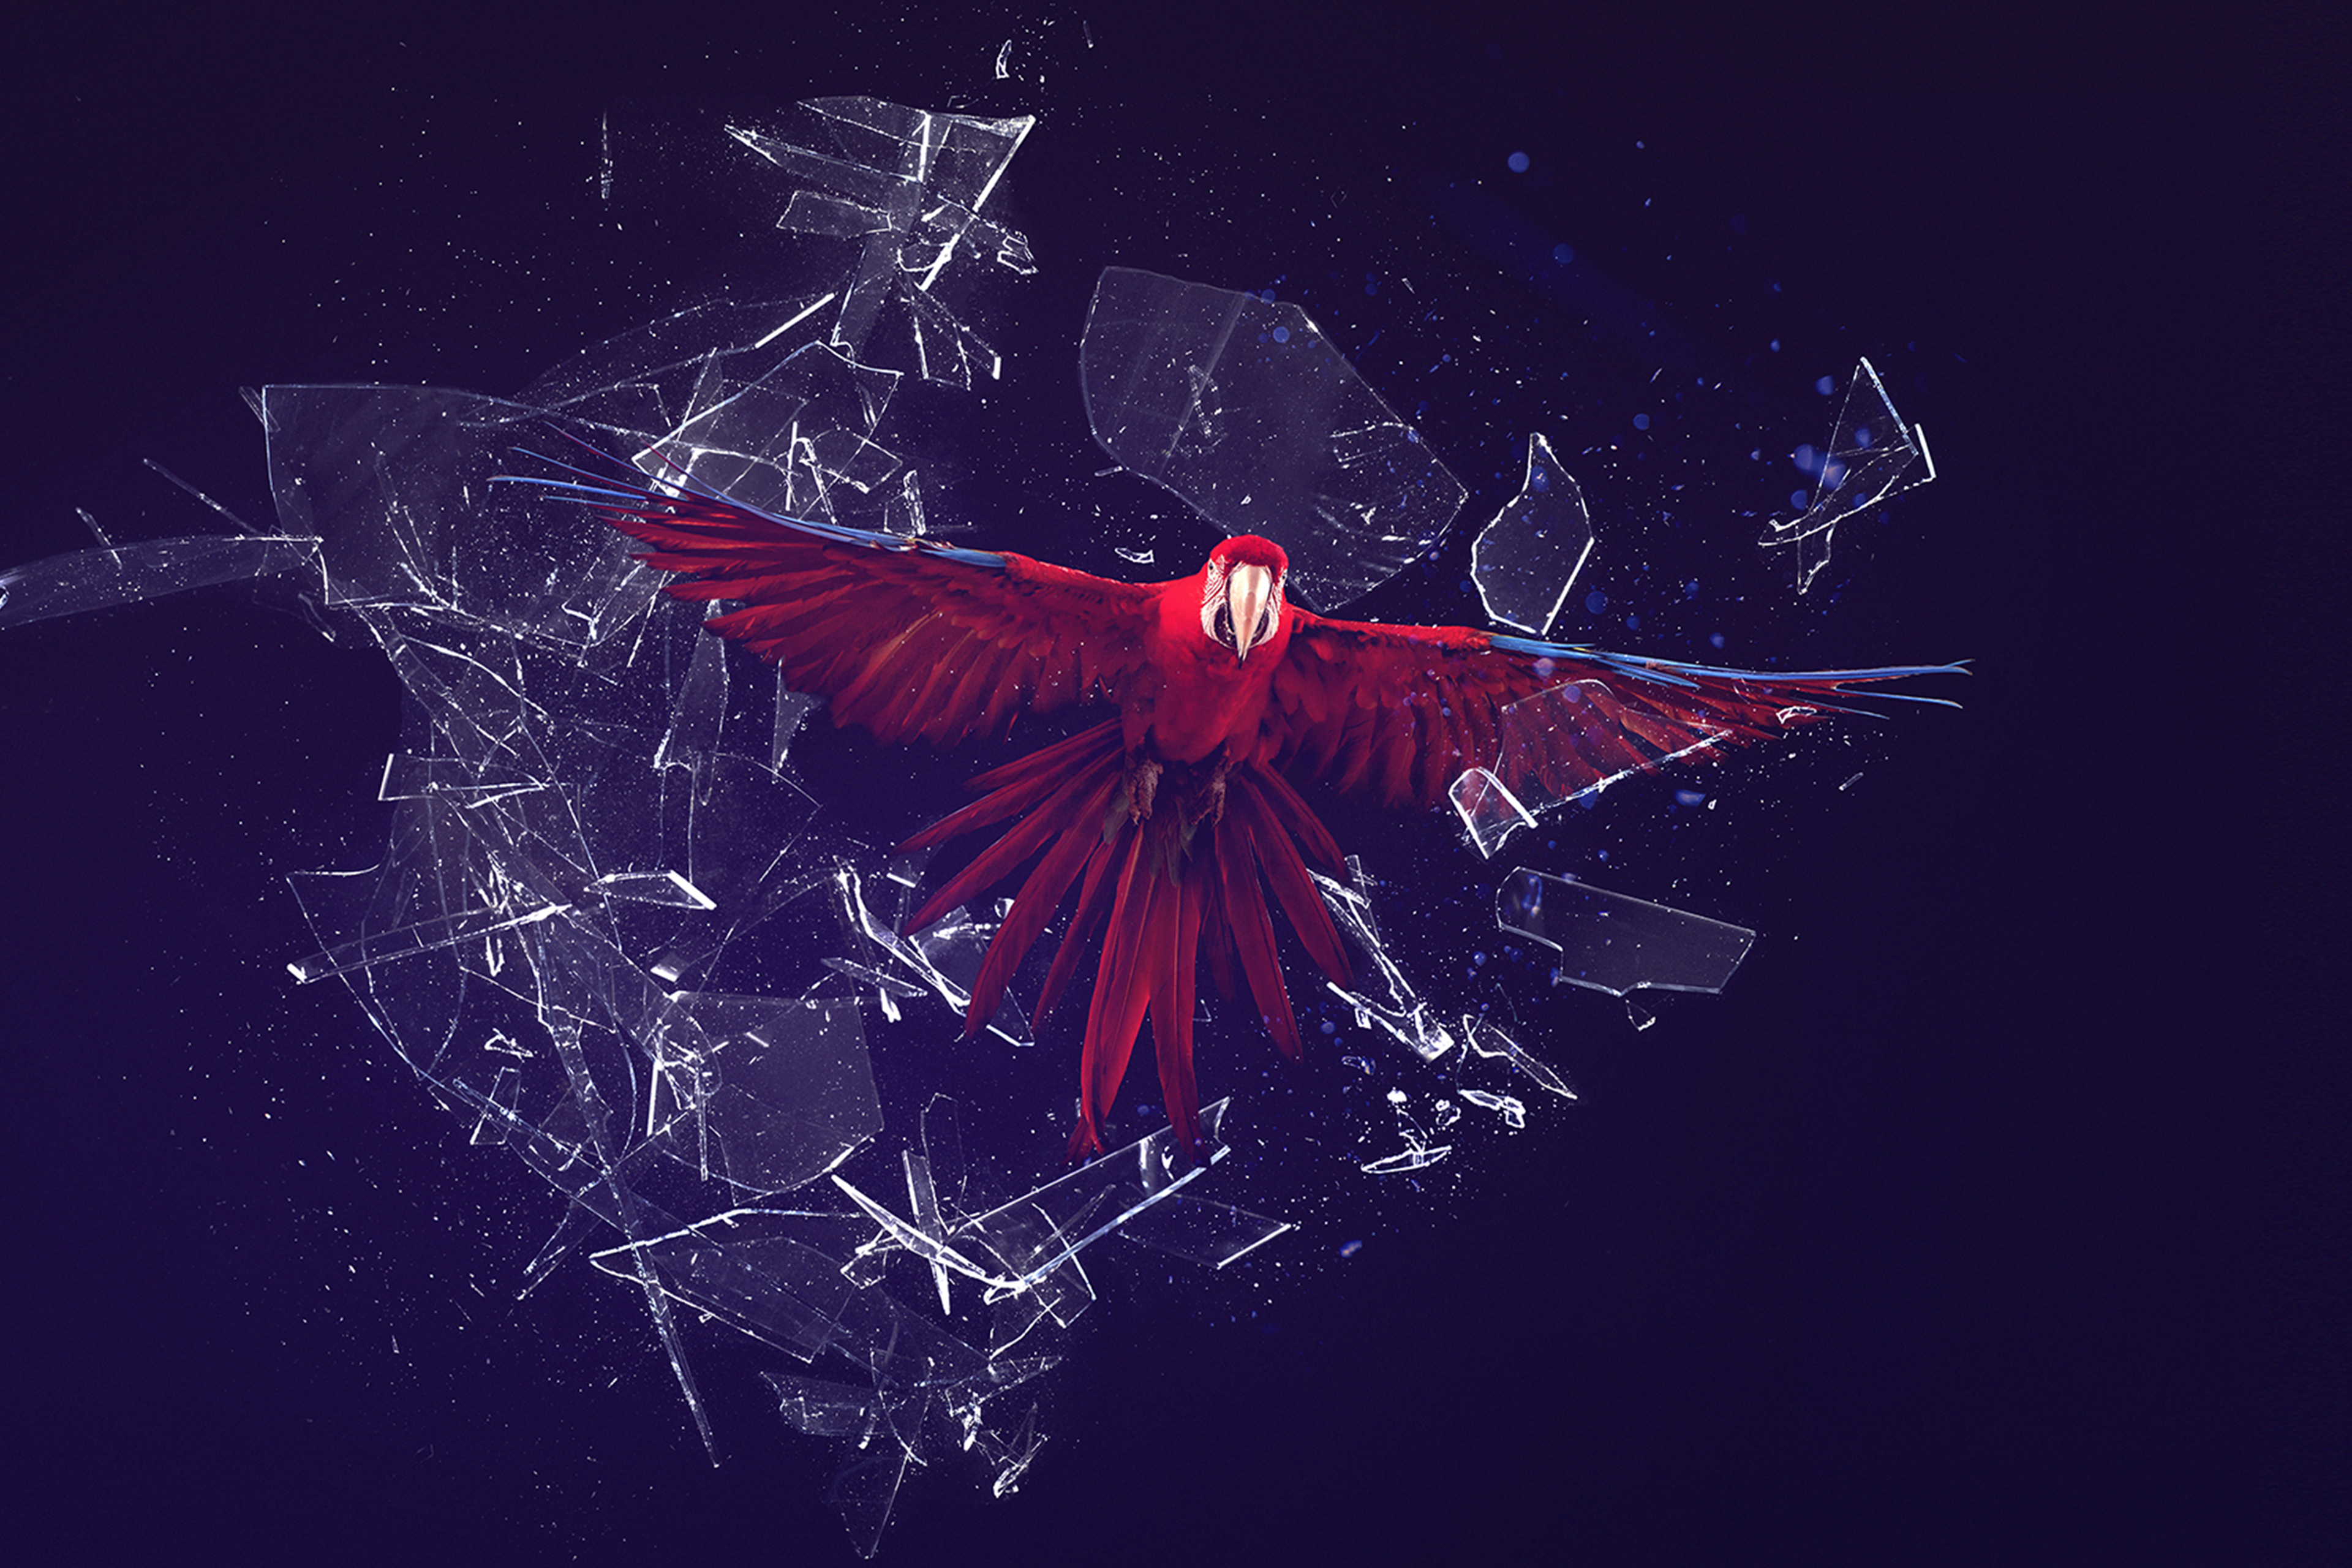 Red bird flying through glass